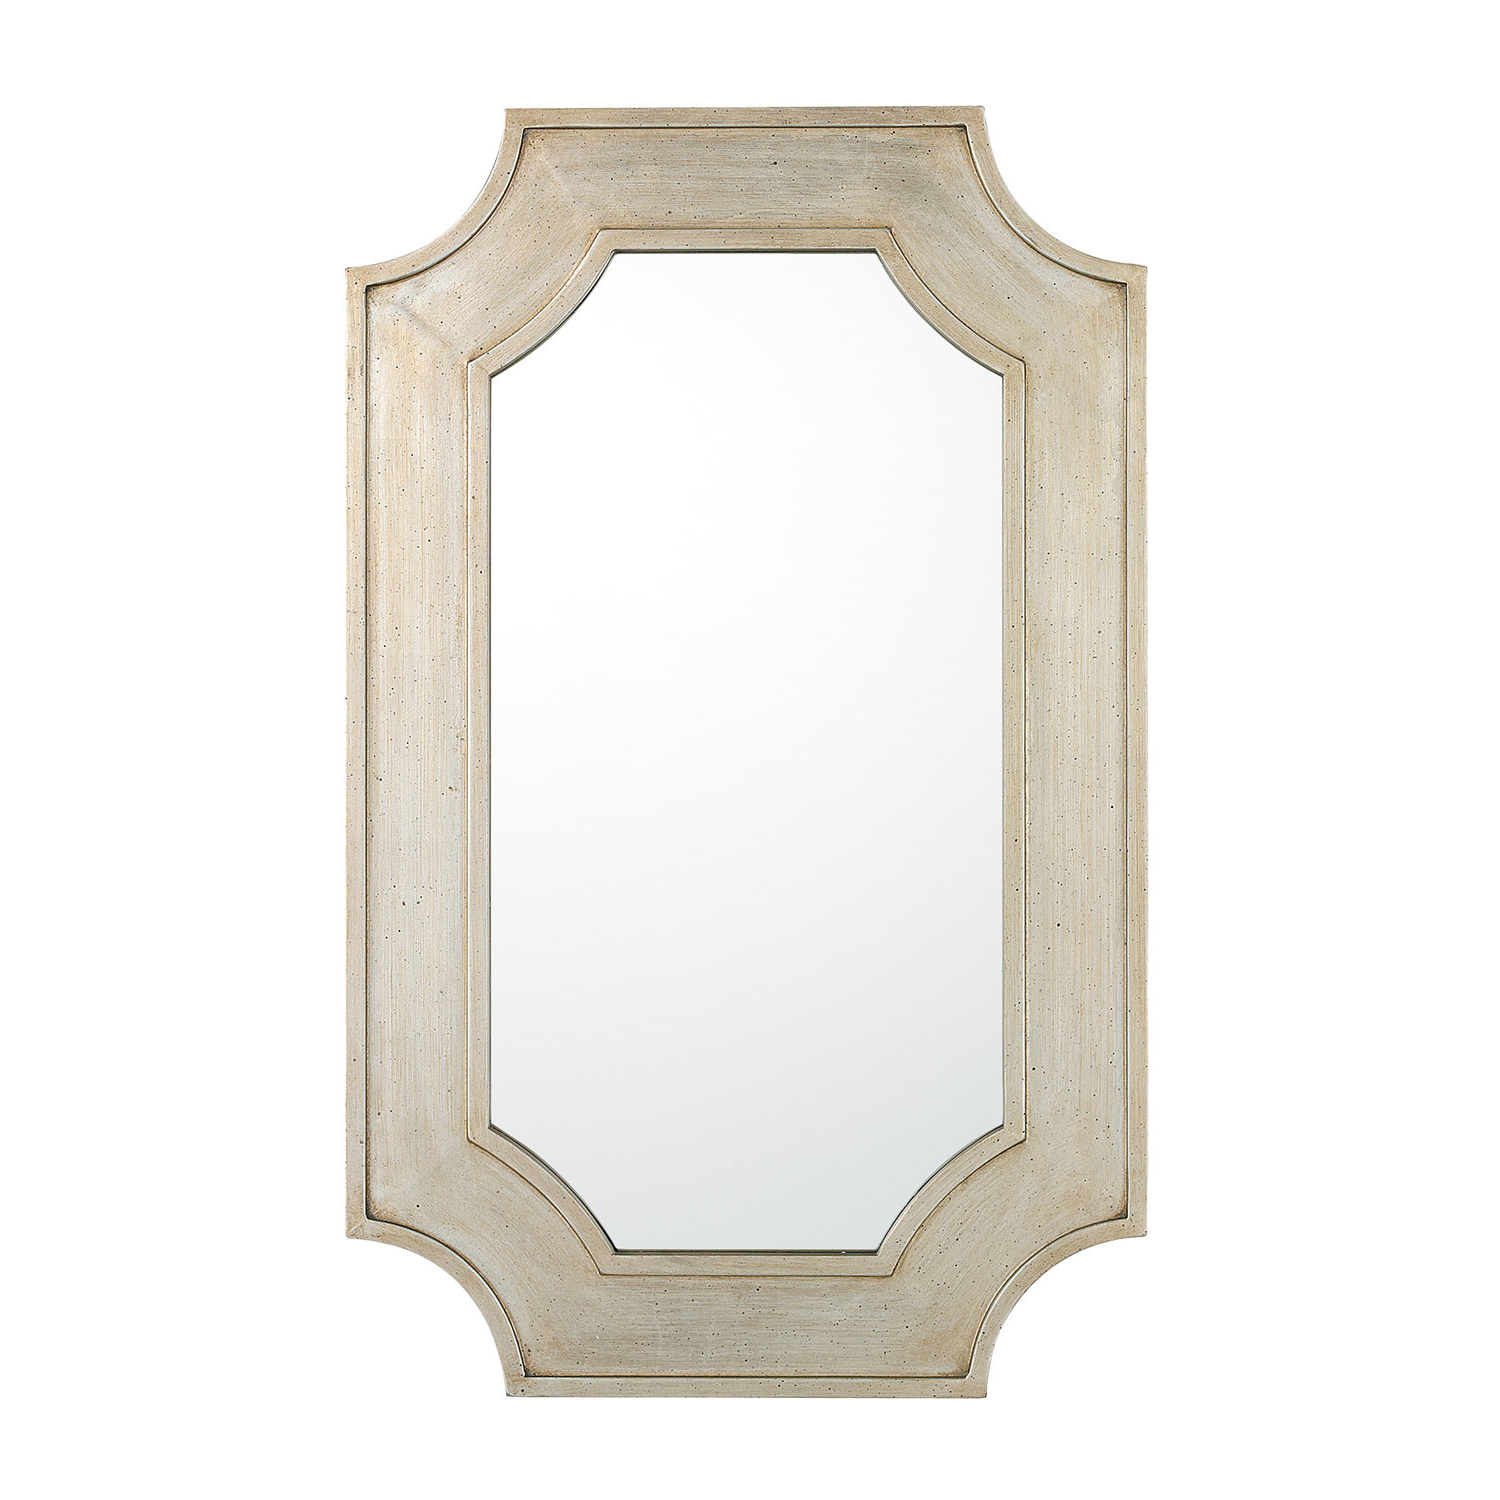 Gingerich Resin Modern & Contemporary Accent Mirrors Within 2020 Dinis Accent Mirror (View 13 of 20)